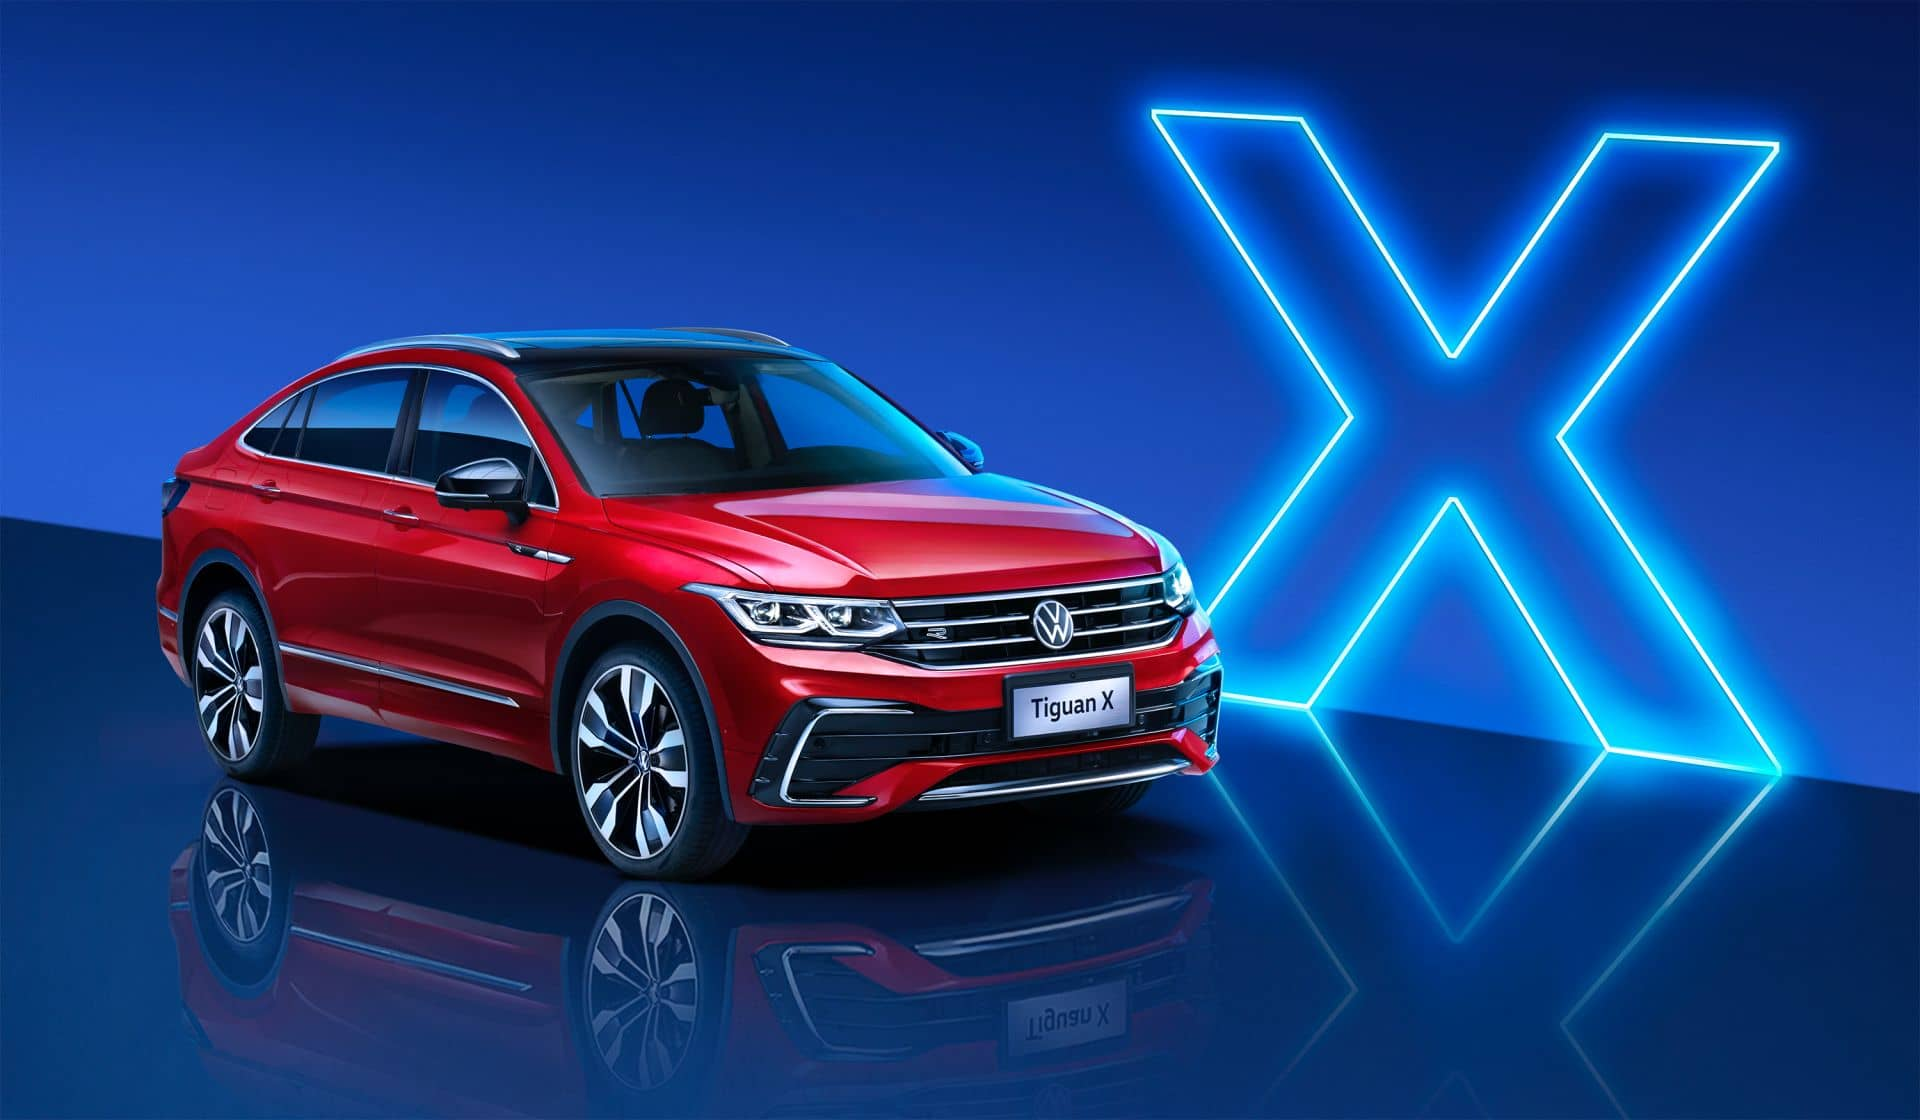 2021-Volkswagen-Tiguan-X-China-spec-2